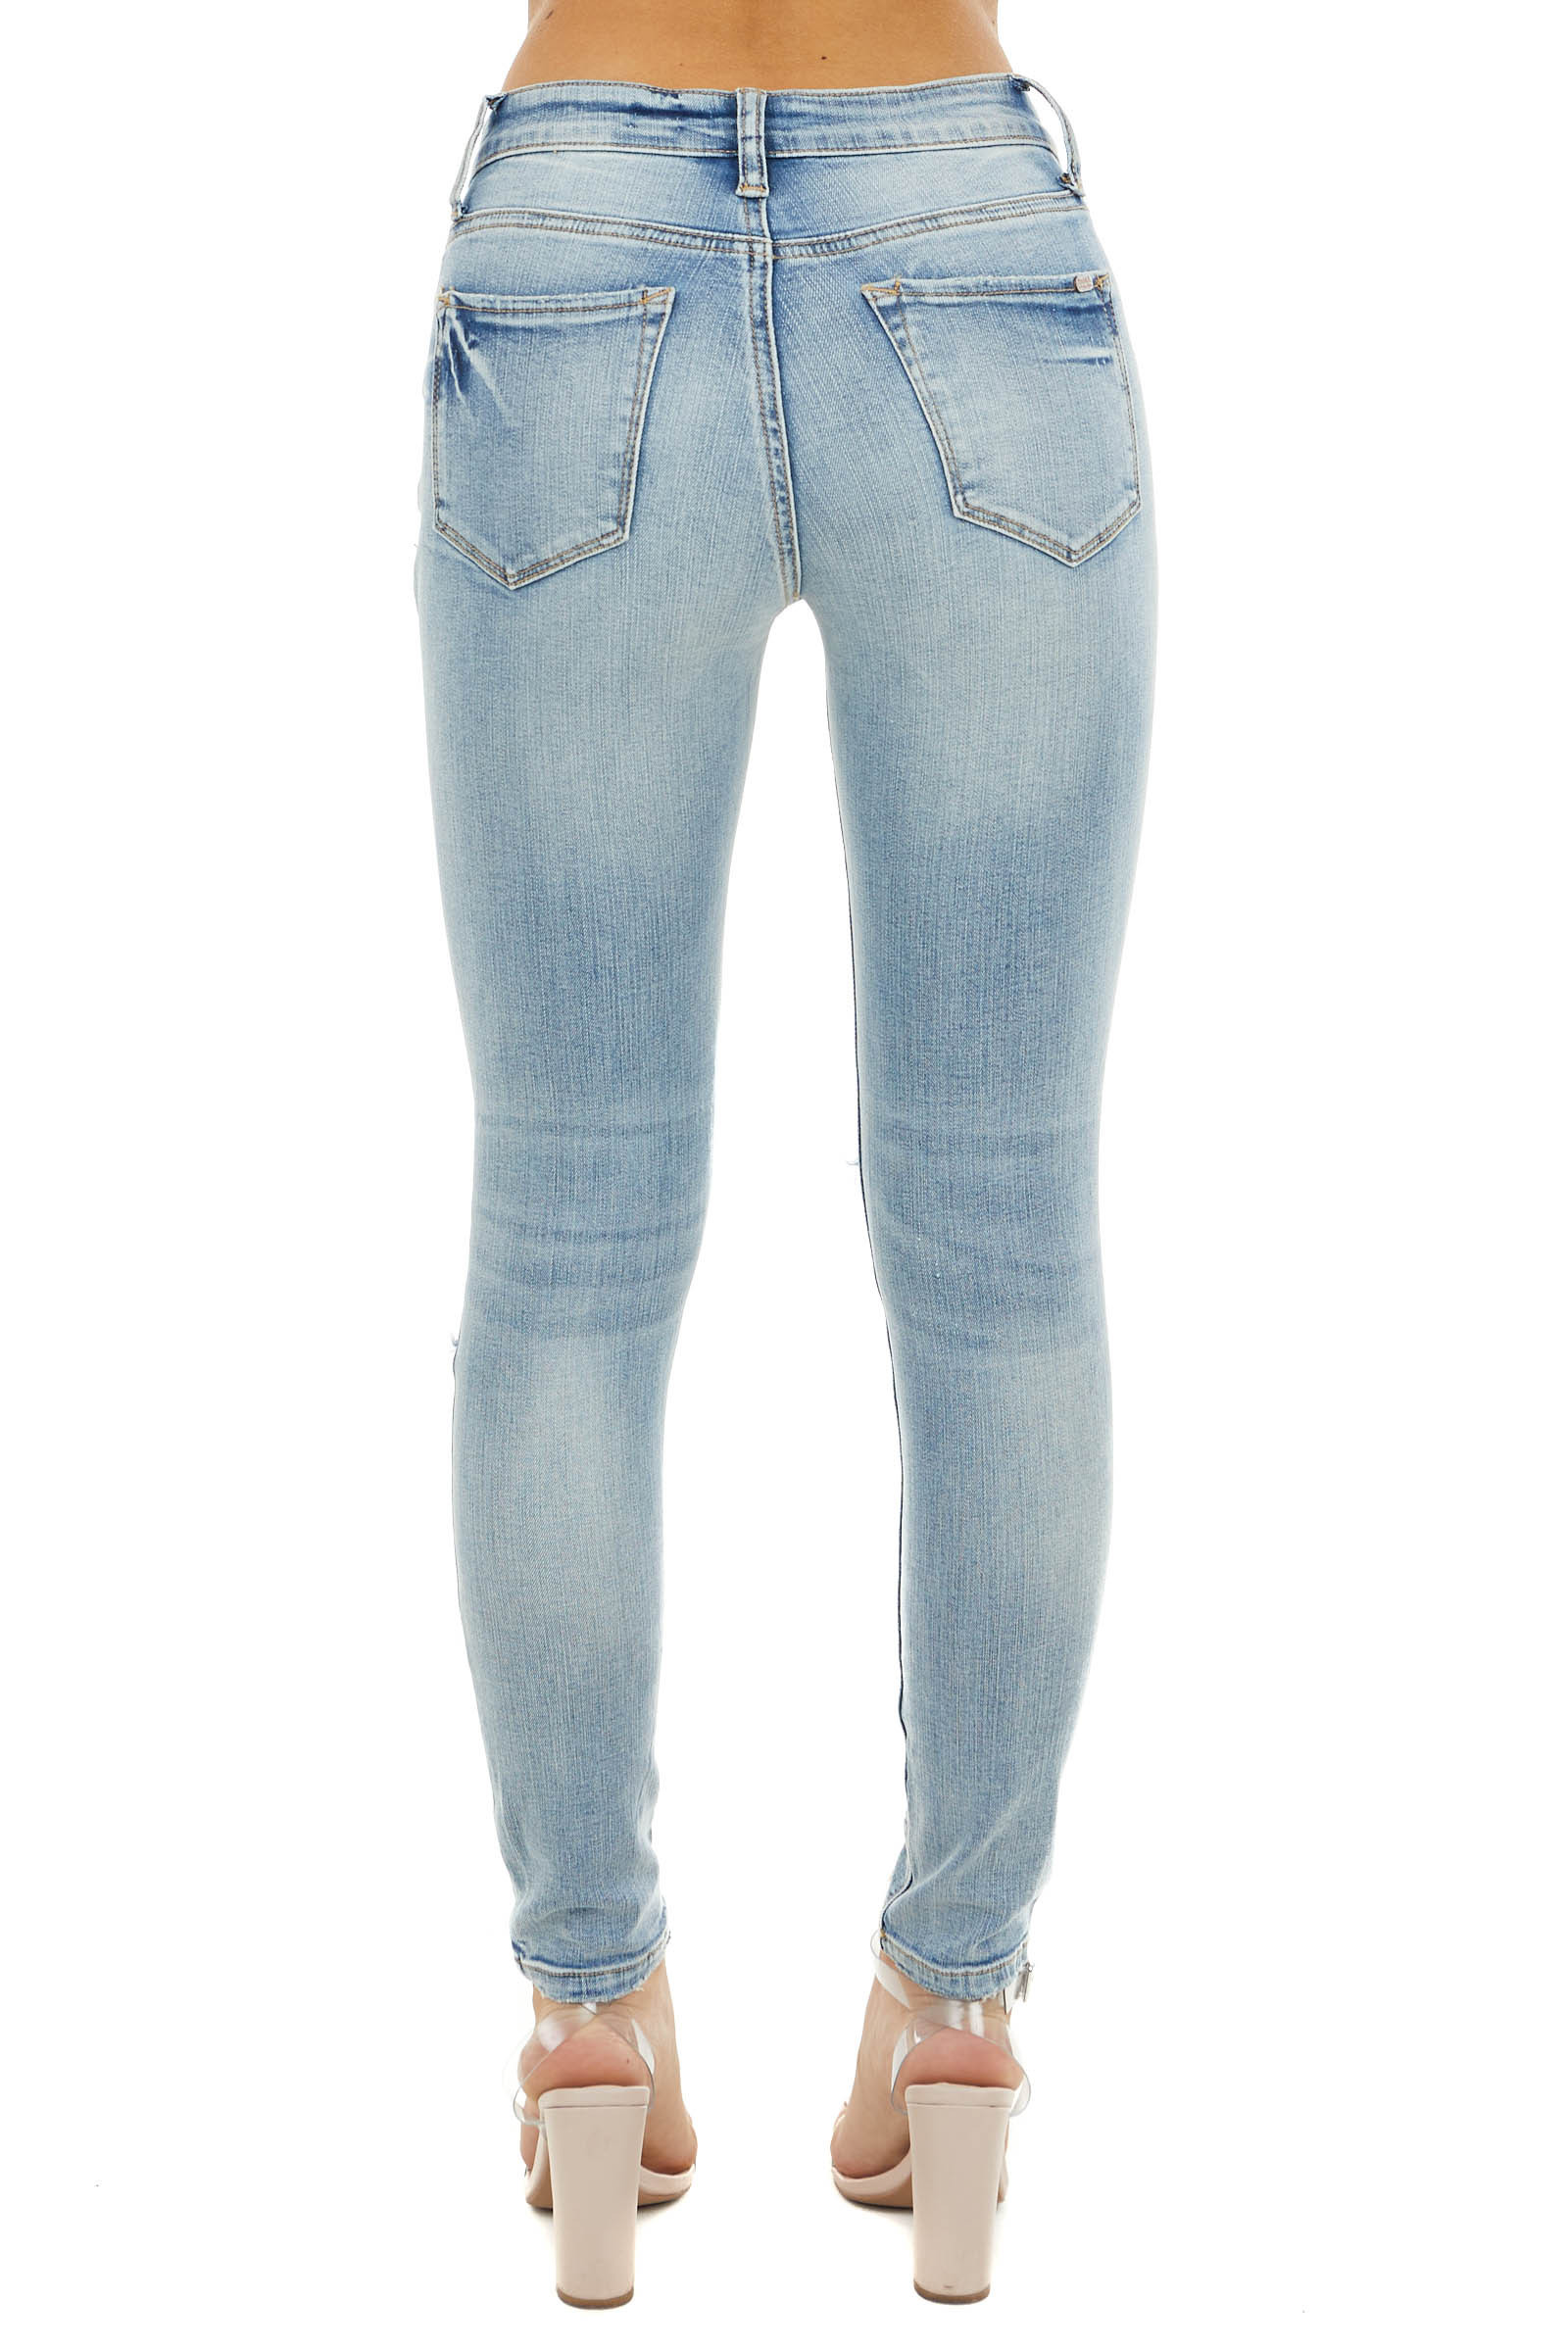 Light Wash Mid Rise Distressed Skinny Jeans